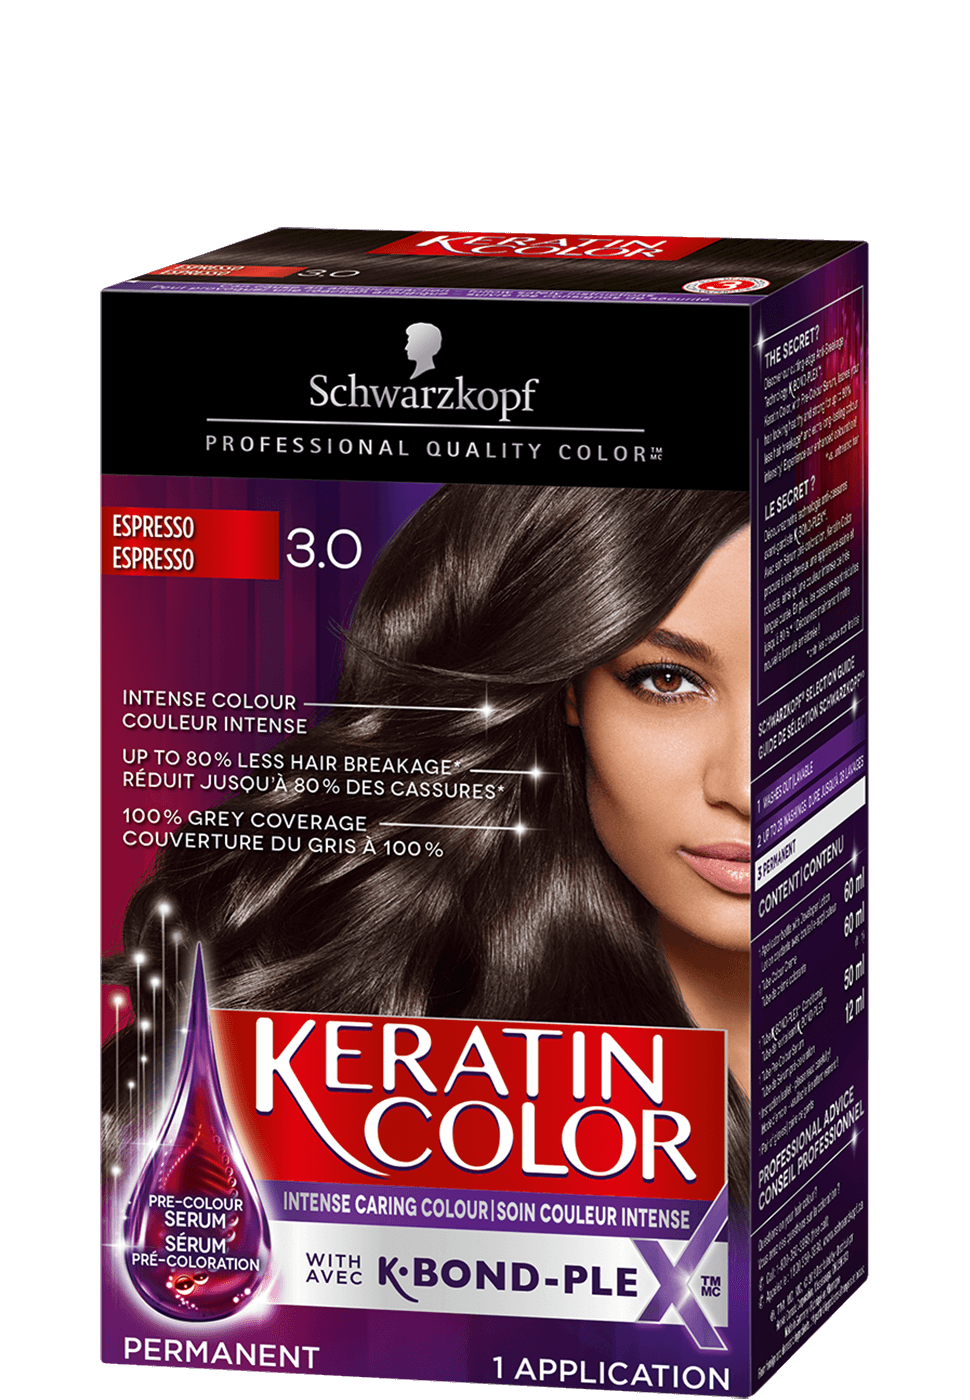 Keratin_Color_en_3_0_970x1400